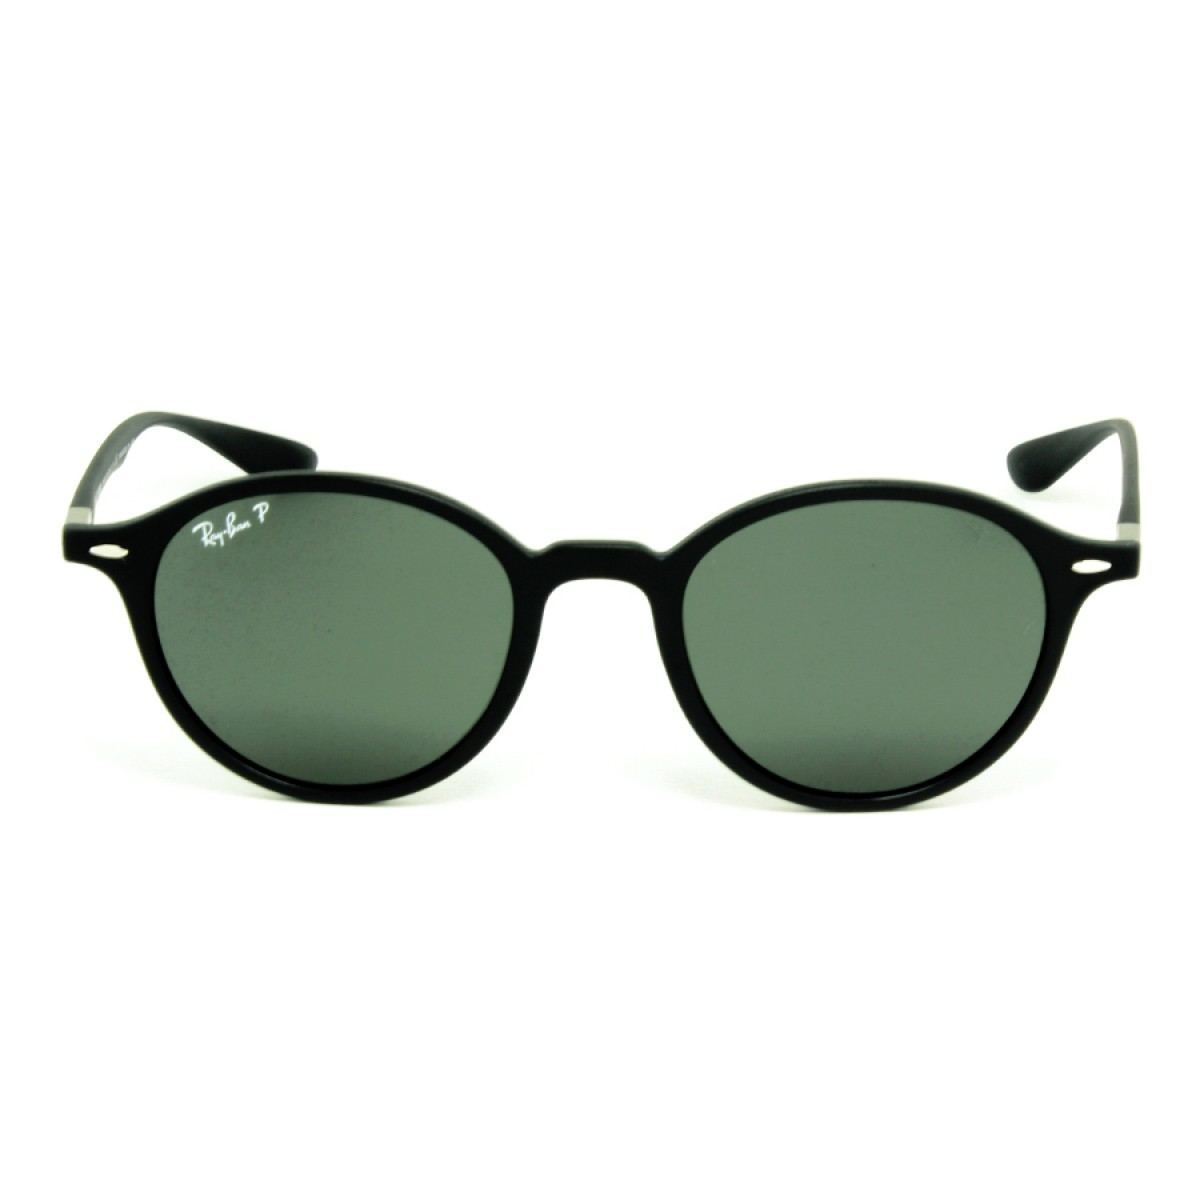 37a73a50a0 Ray Ban Round Lightforce Black Polarized Green Classic G-15 Unisex  Sunglasses RB4237-601S58-50 - Fashion World